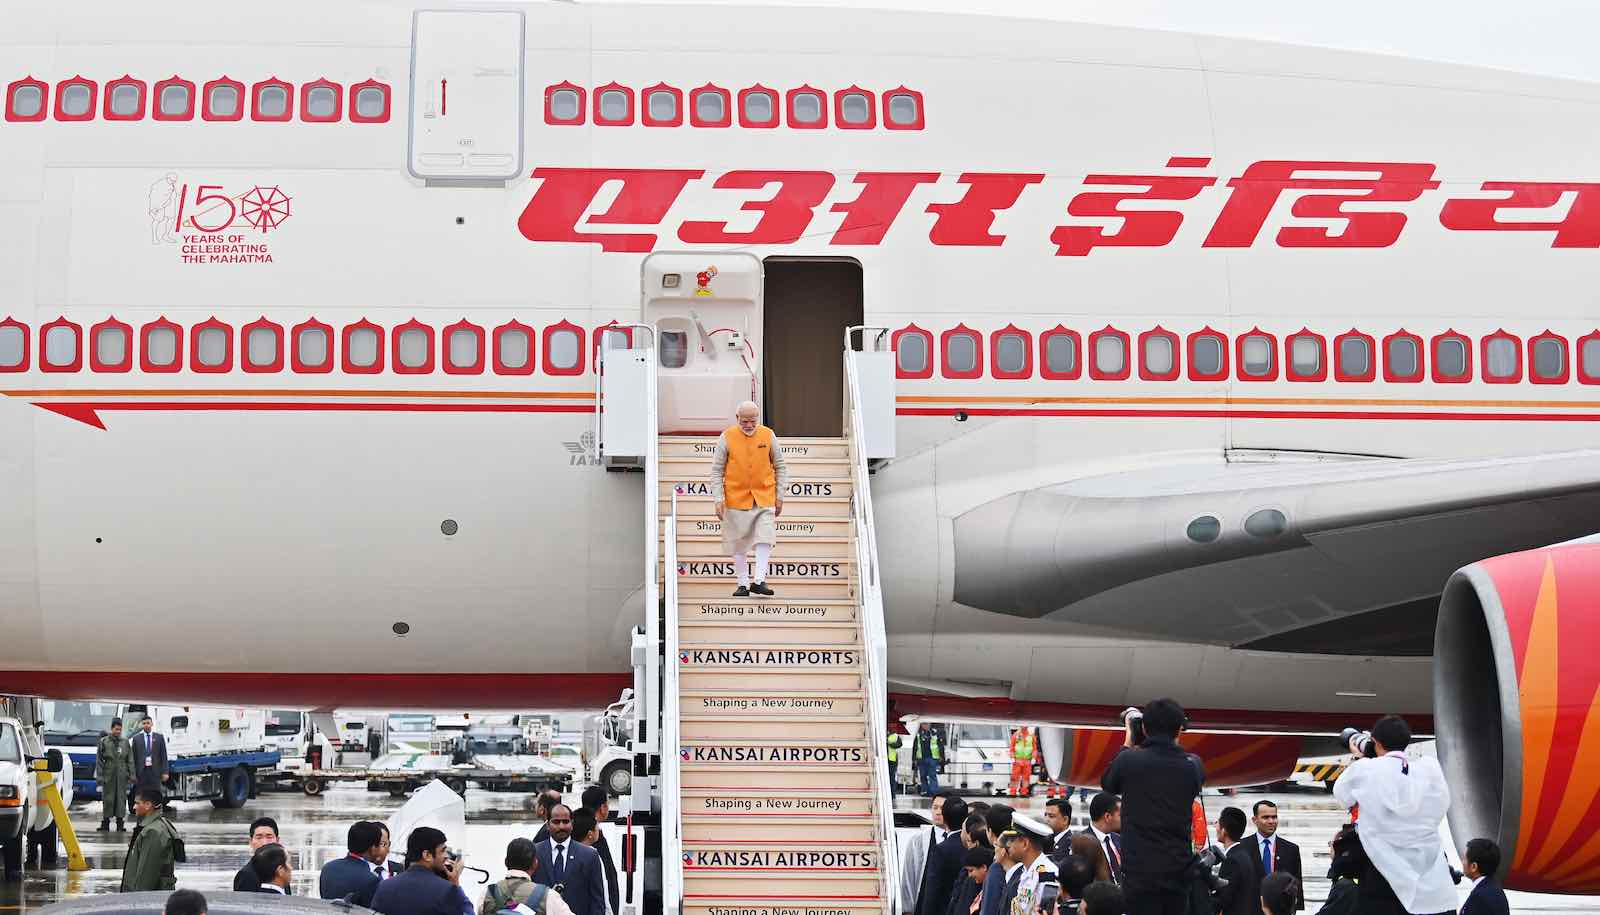 Indian PM Narendra Modi arrives for the G20 Summit in Osaka, Japan, 27 June 2019 (Photo: Charly Triballeau via Getty)